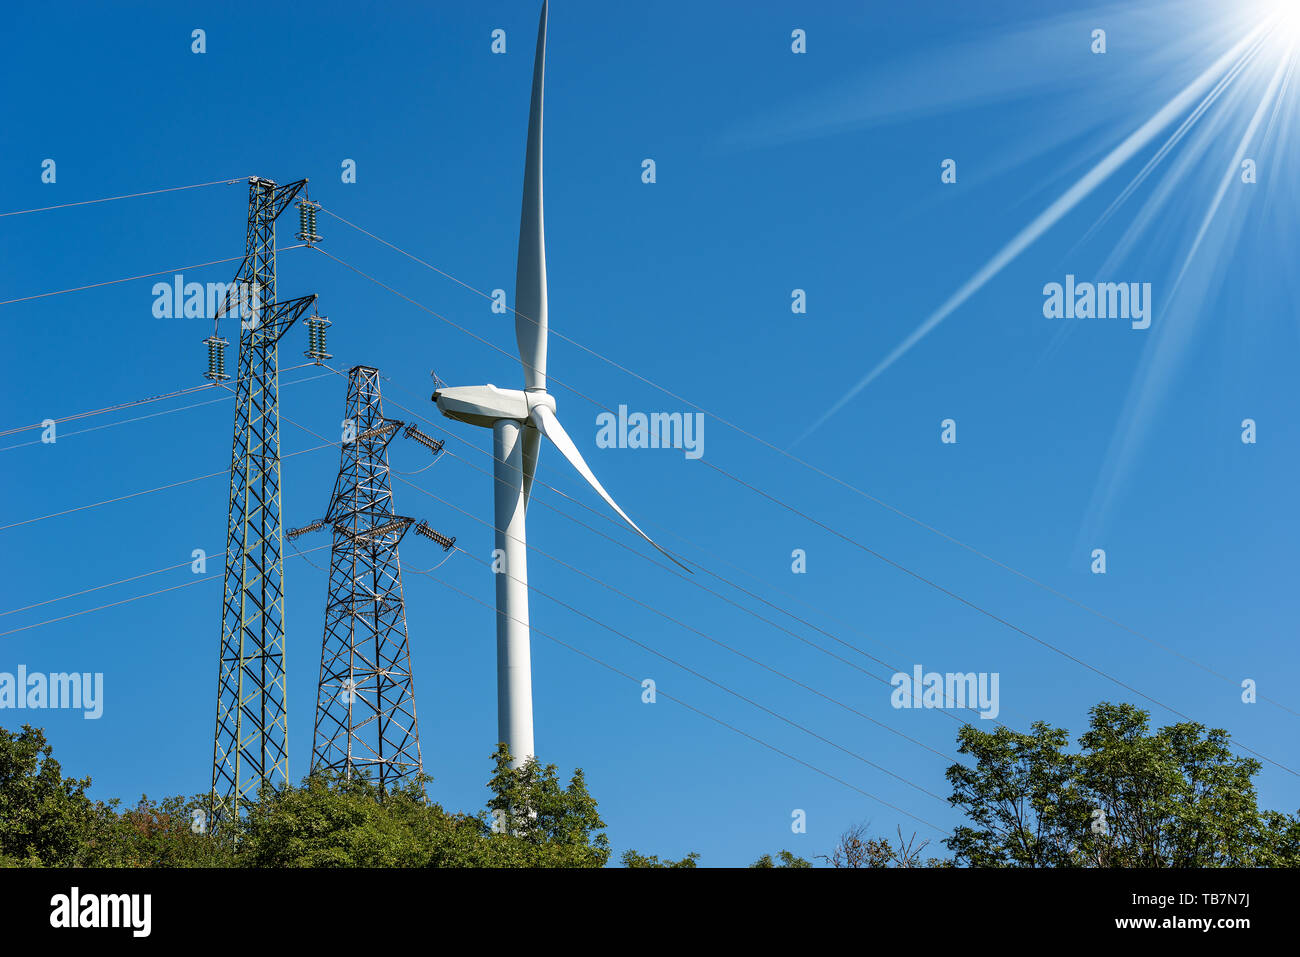 Wind turbine and high voltage towers (power line) on a clear blue sky with sun rays - Renewable energy concept Stock Photo